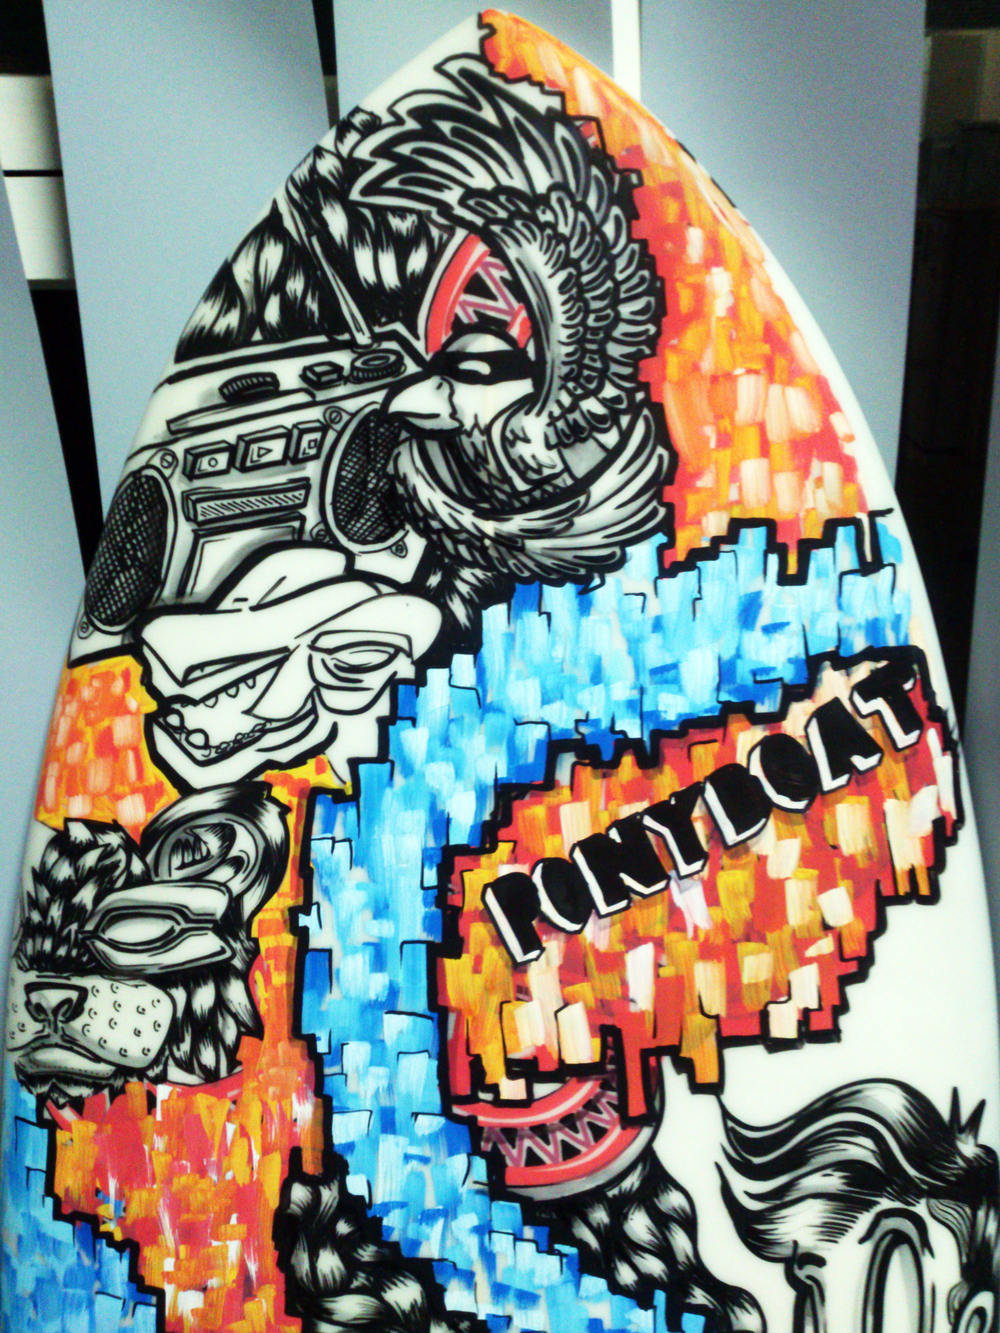 nose-closeup-close-up-painted-surfboard-handmade-hand-painted-sydney-painter-sam-shennan-ud3-illustrator.jpg